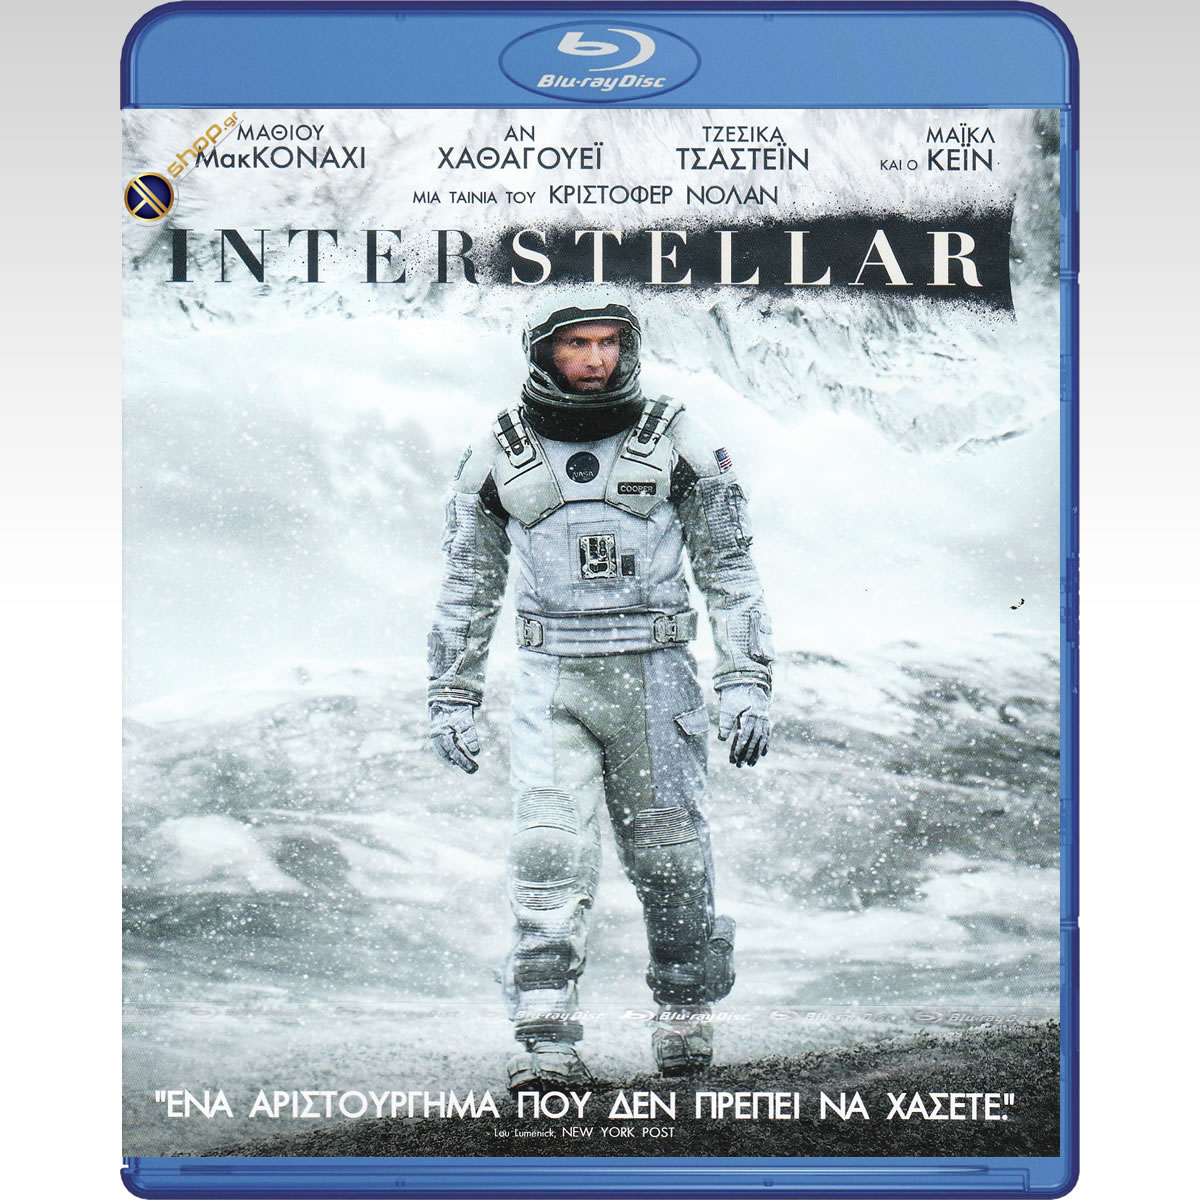 INTERSTELLAR (2 BLU-RAYs)